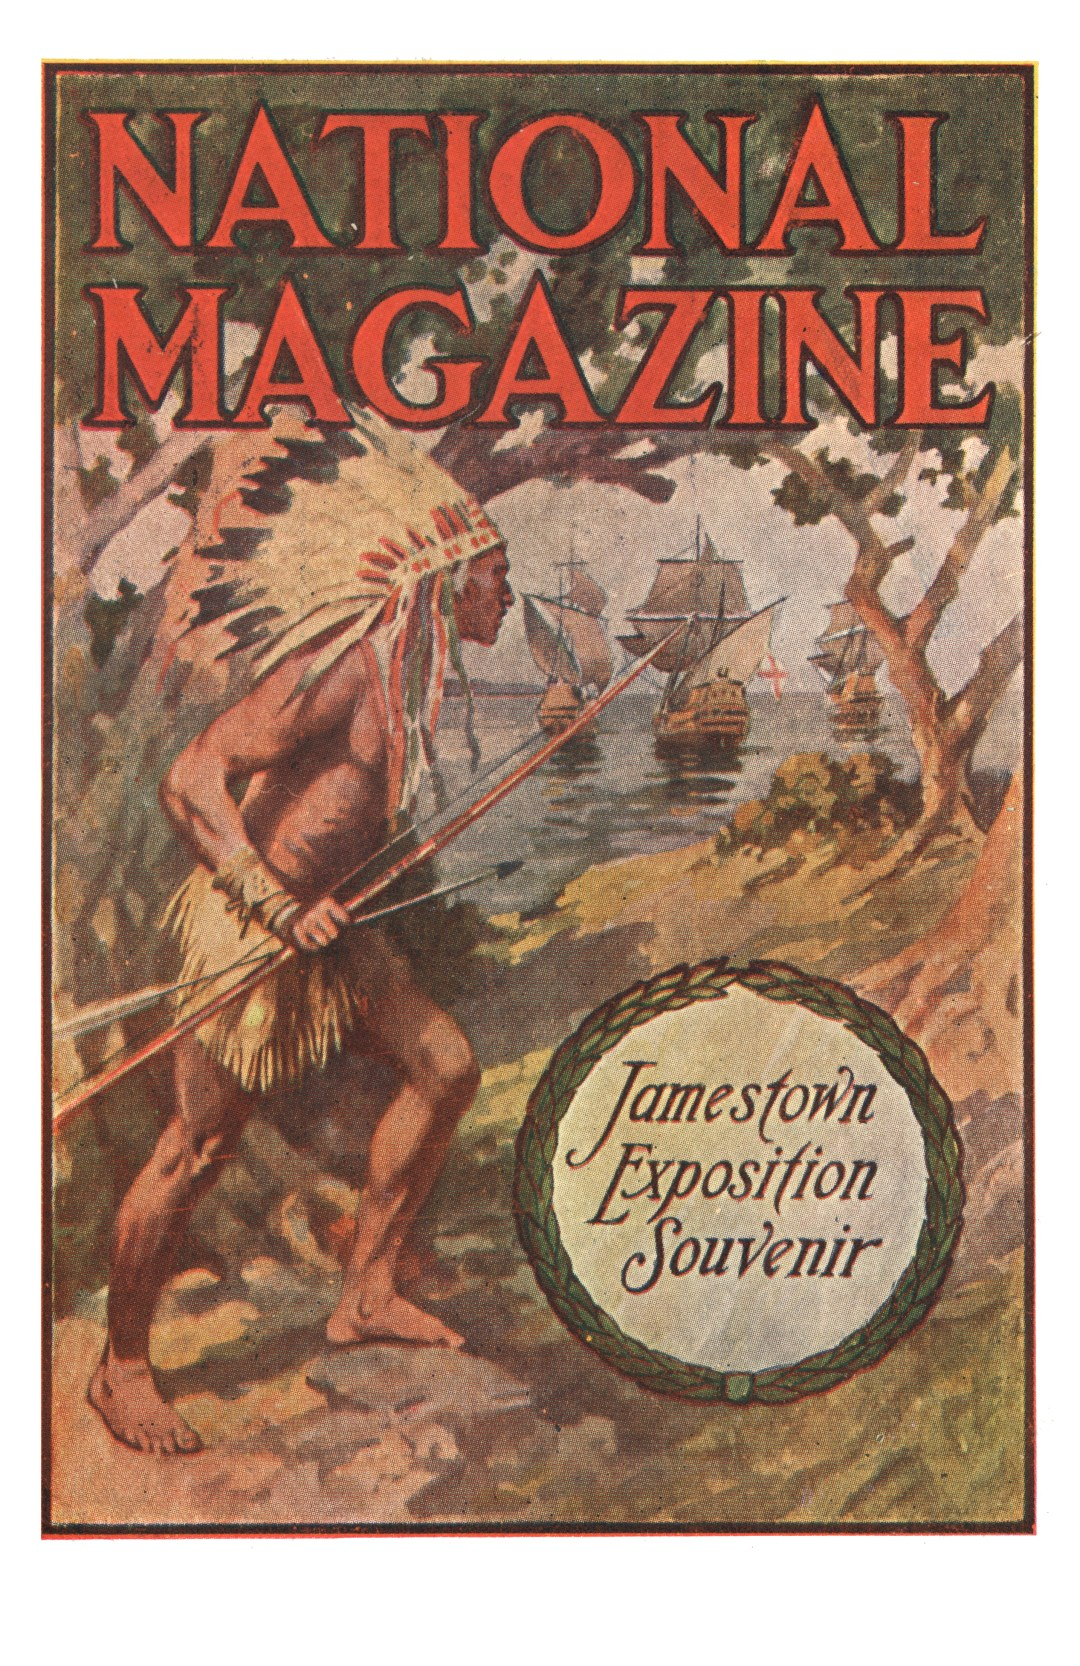 06PCJamestown Exposition00225 - National Magazine copy